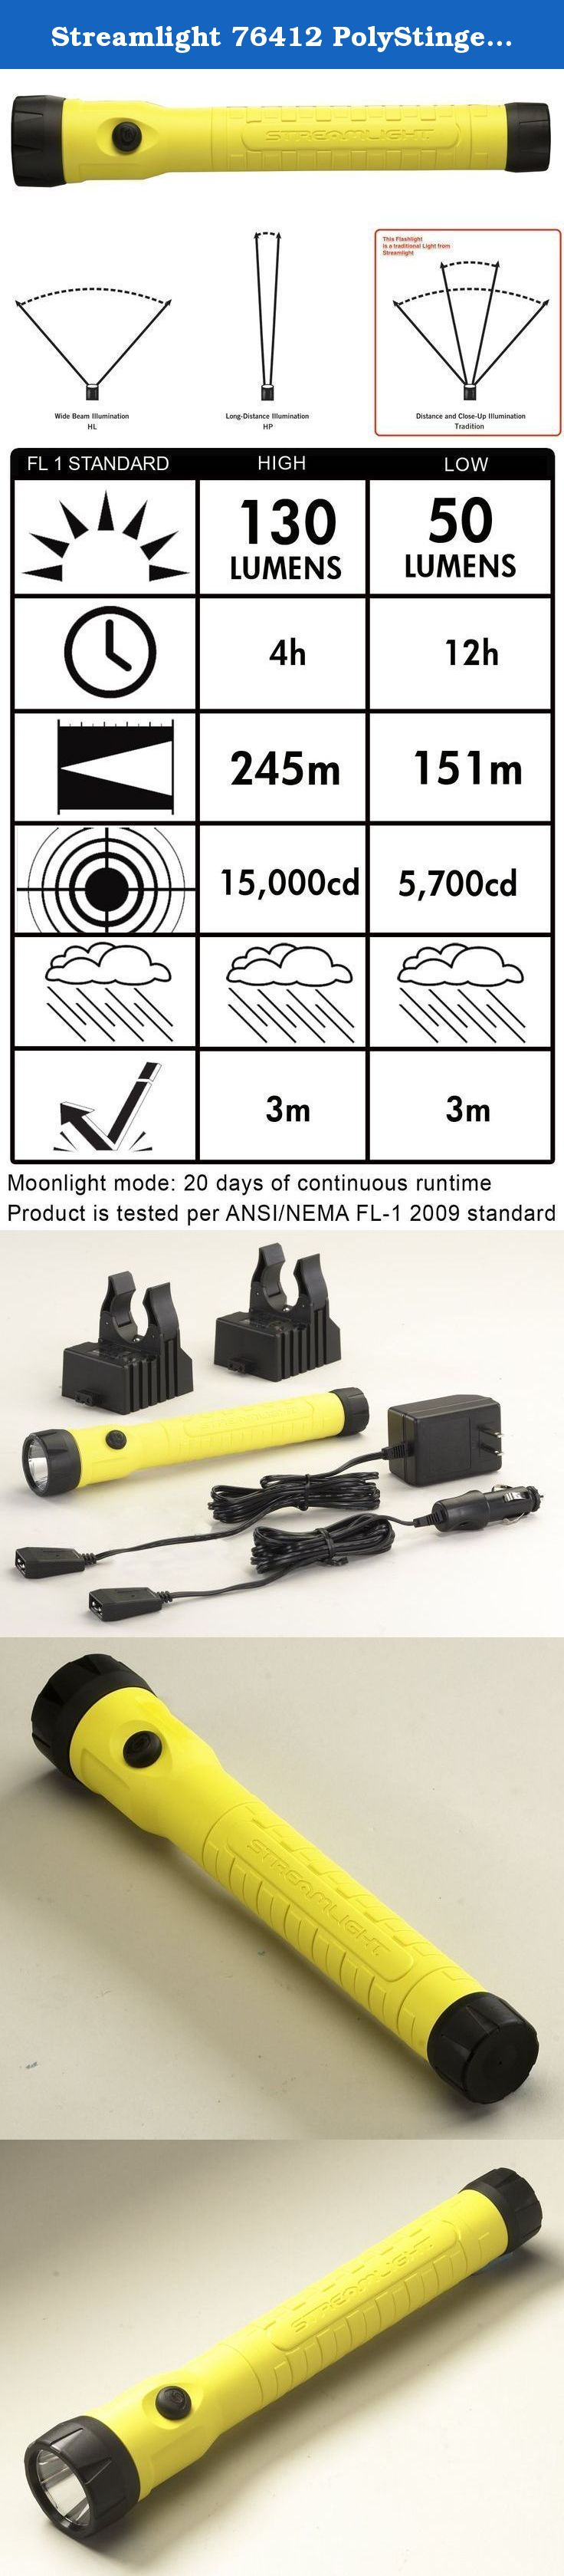 Yellow Streamlight 76412 PolyStinger LED HAZ-LO Intrinsically Safe Rechargeable Flashlight with 120-Volt AC//12-Volt DC Charger 130 Lumens